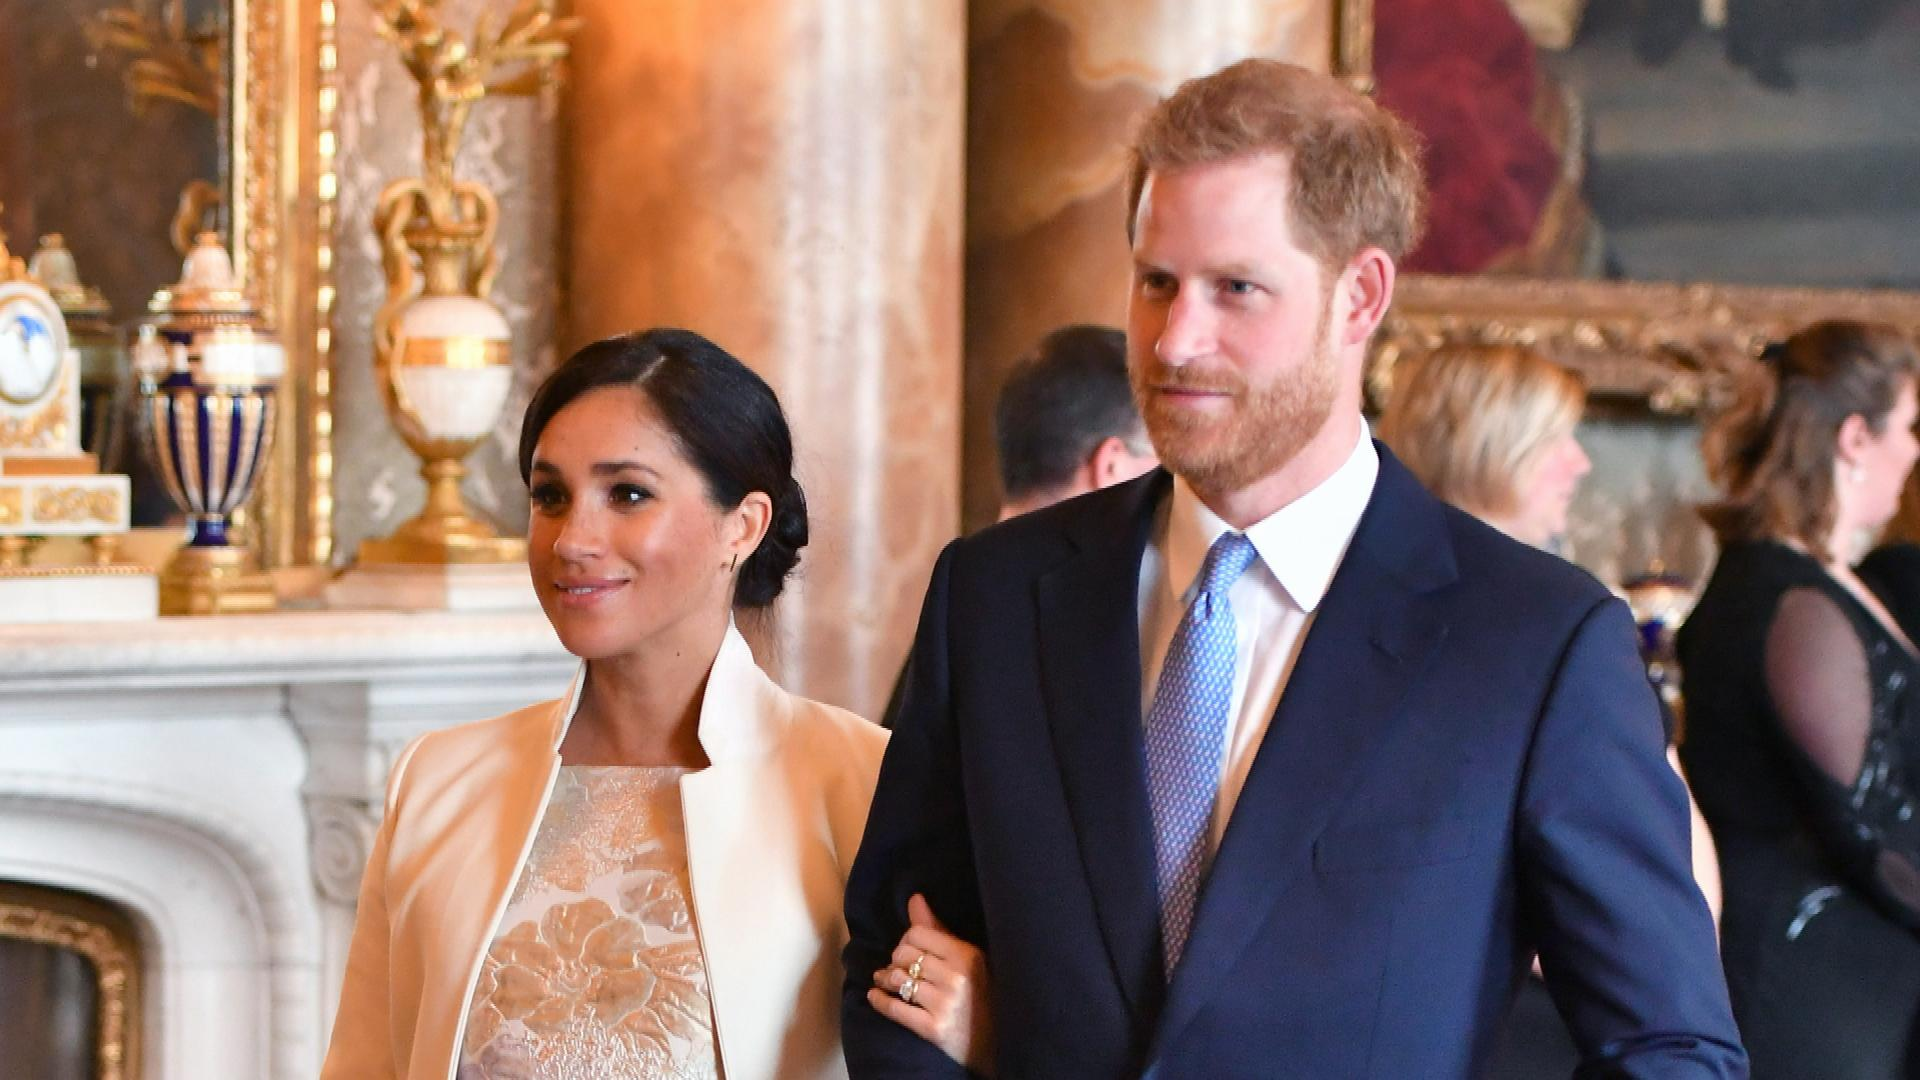 meghan-markle-and-prince-harry-planning-to-move-to-california-after-welcoming-their-baby